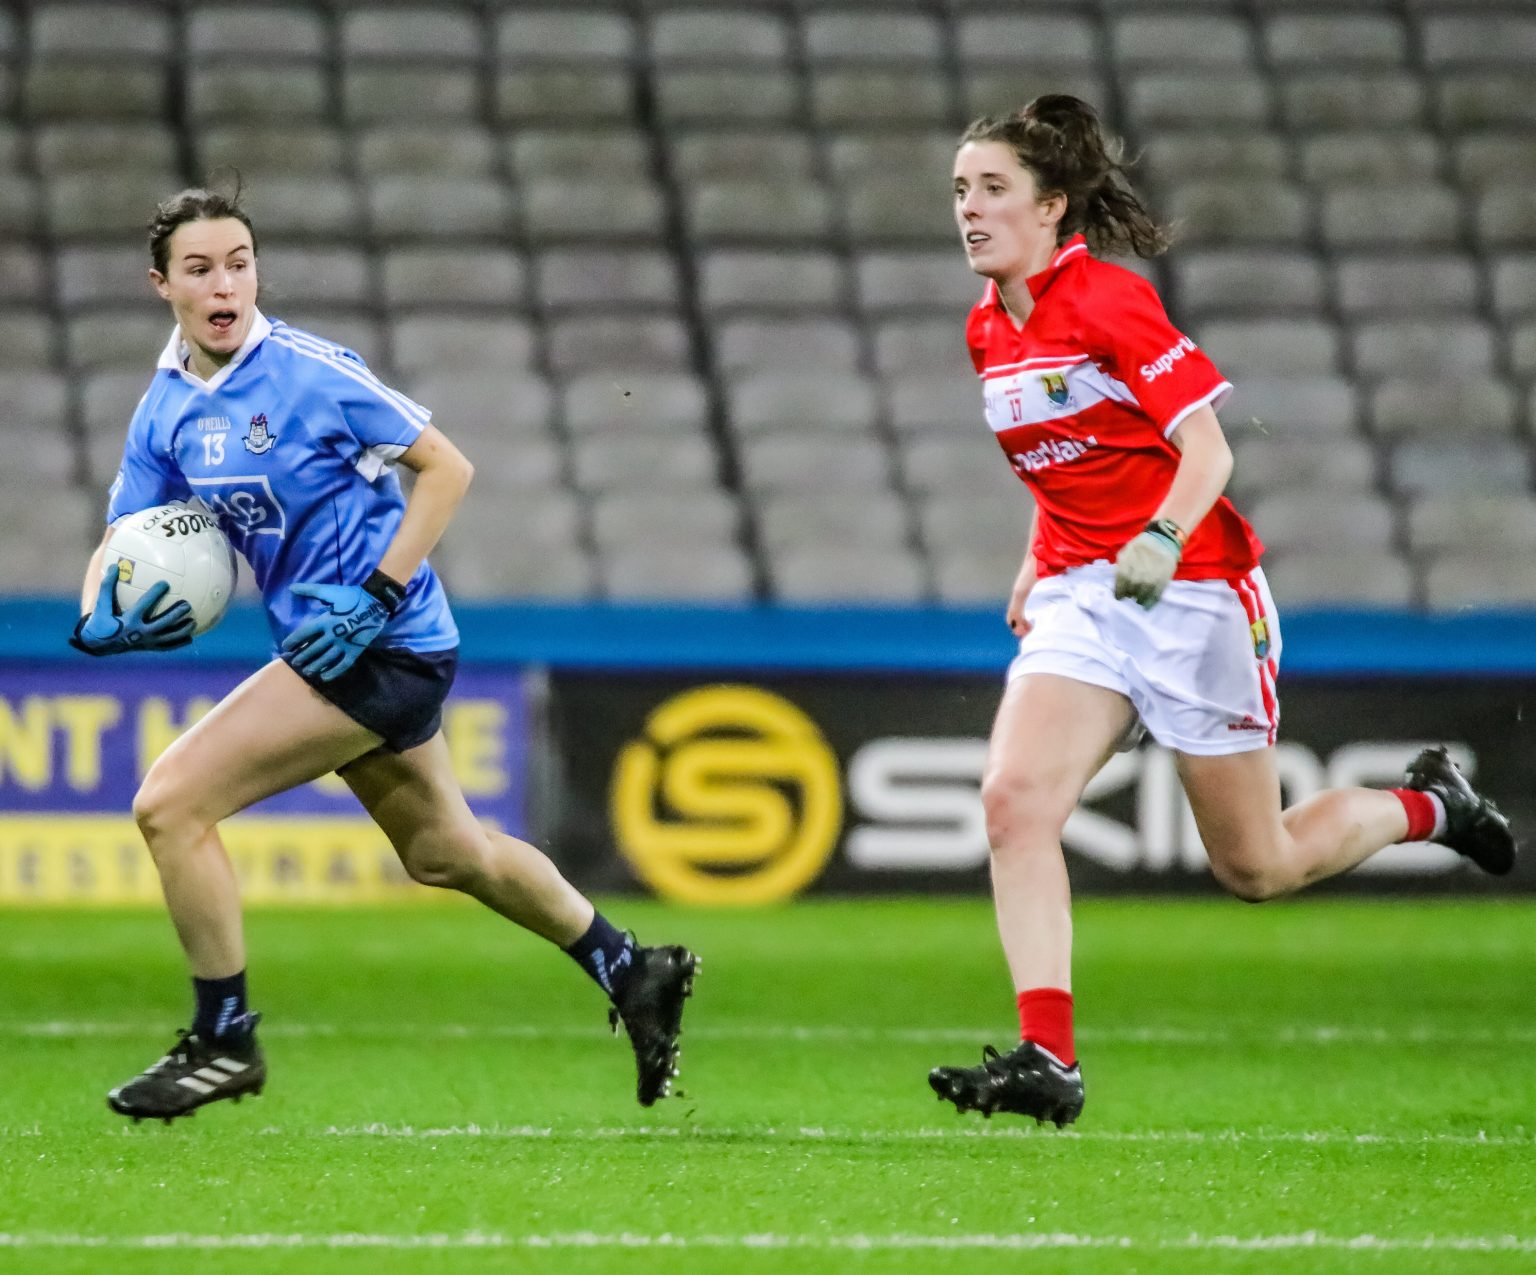 LIDL NFL ROUND-UP: THIRD STRAIGHT WIN FOR DUBLIN AND MAYO PIP GALWAY